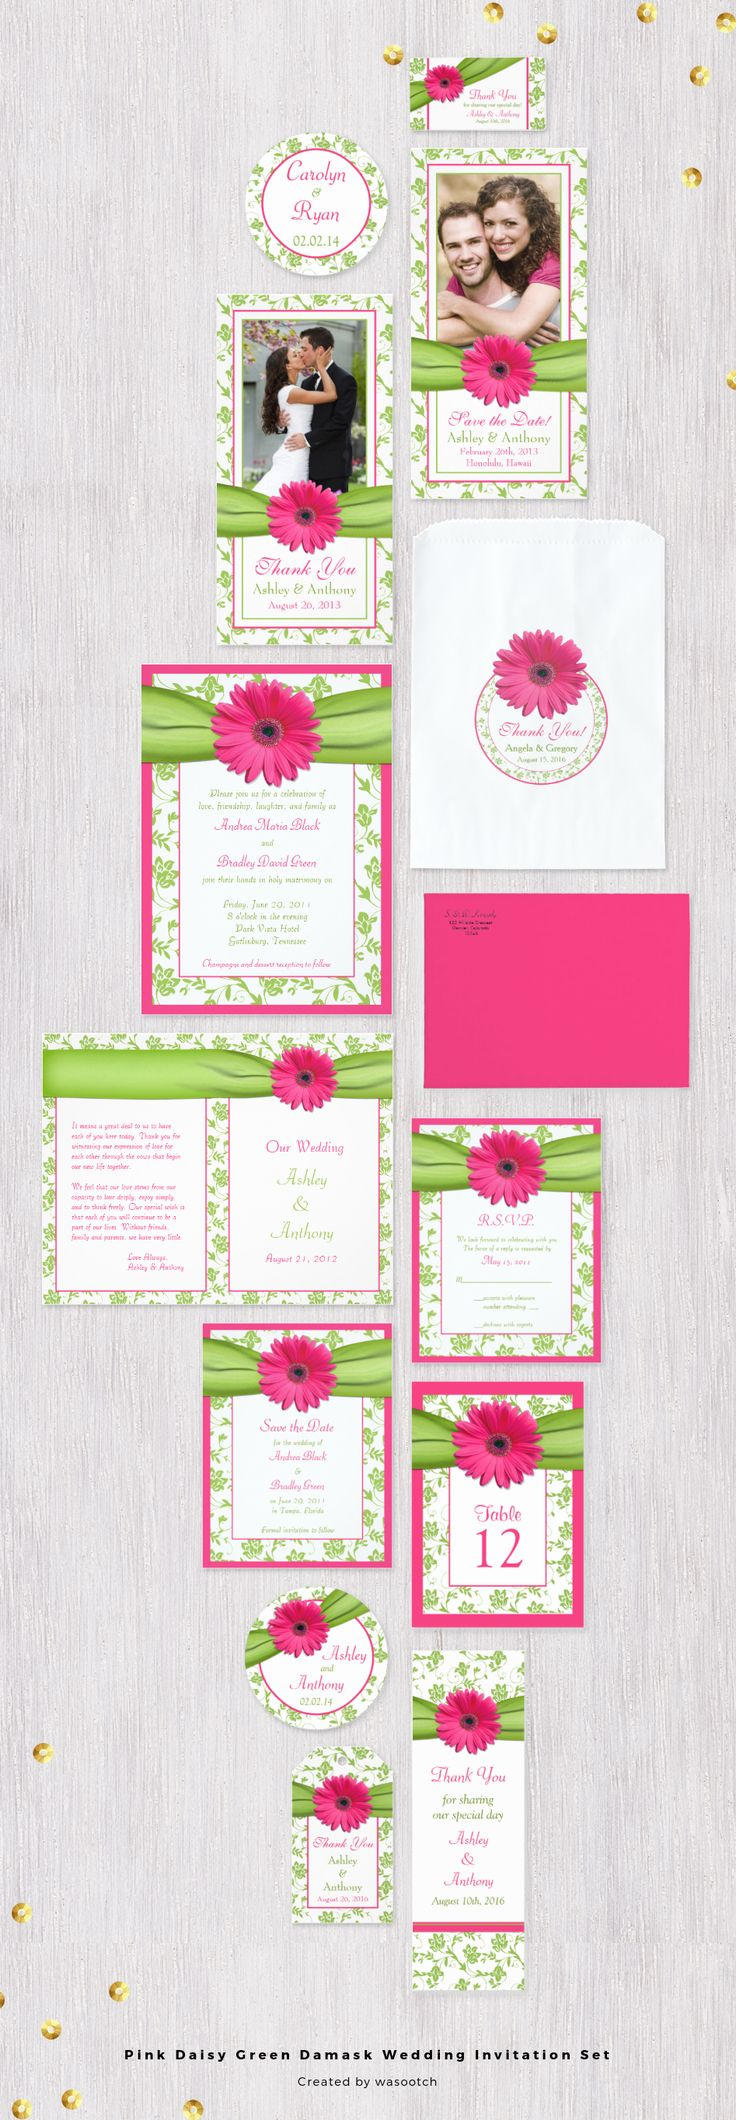 Fuscia Hot Pink gerbera daisy and apple/chartreuse green floral damask and ribbon wedding invitation set. | Spring, summer, outdoor garden wedding | raspberry